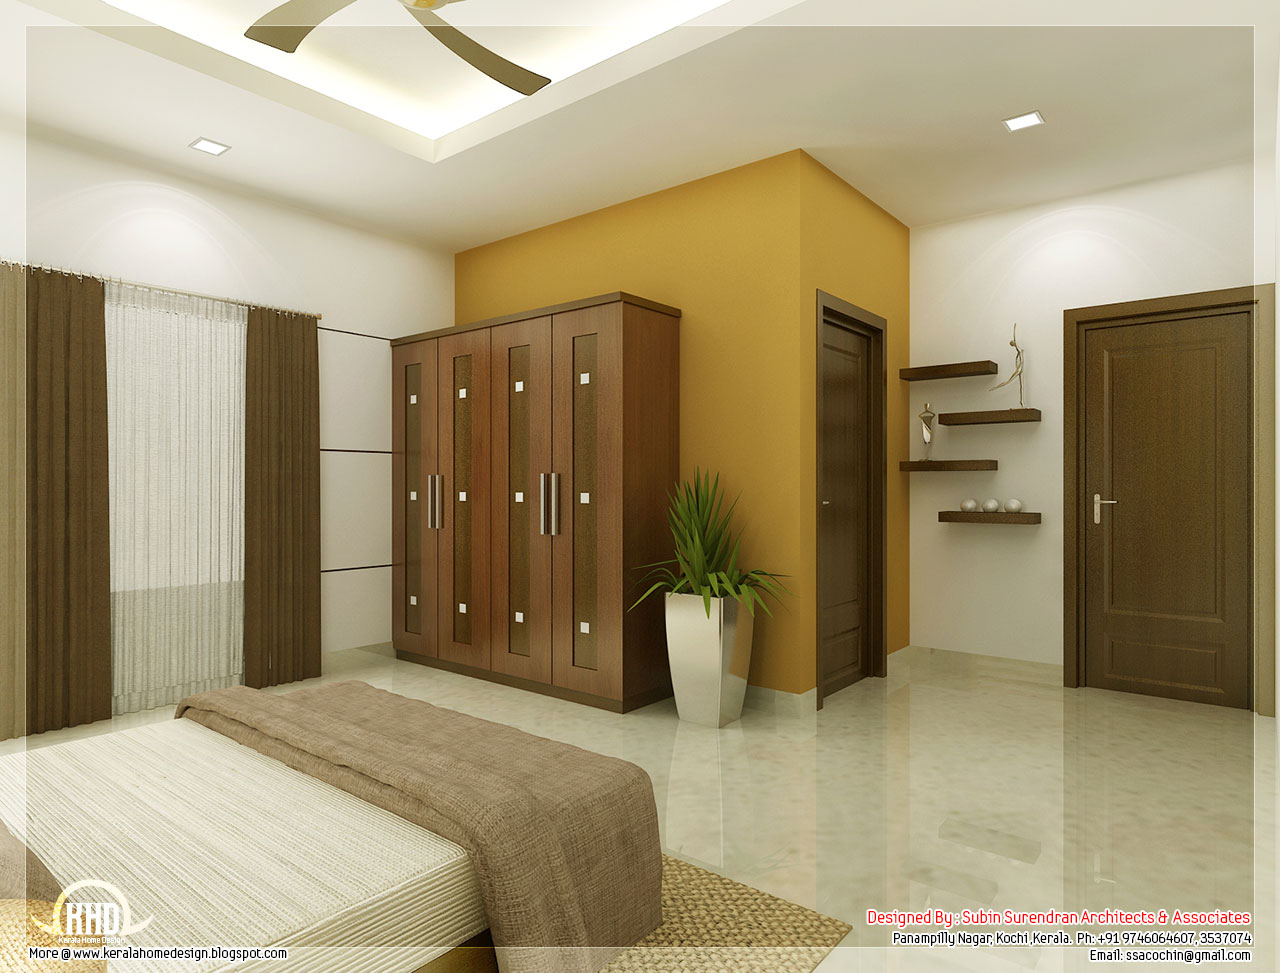 Beautiful bedroom interior designs kerala home design for Kerala home interior design ideas